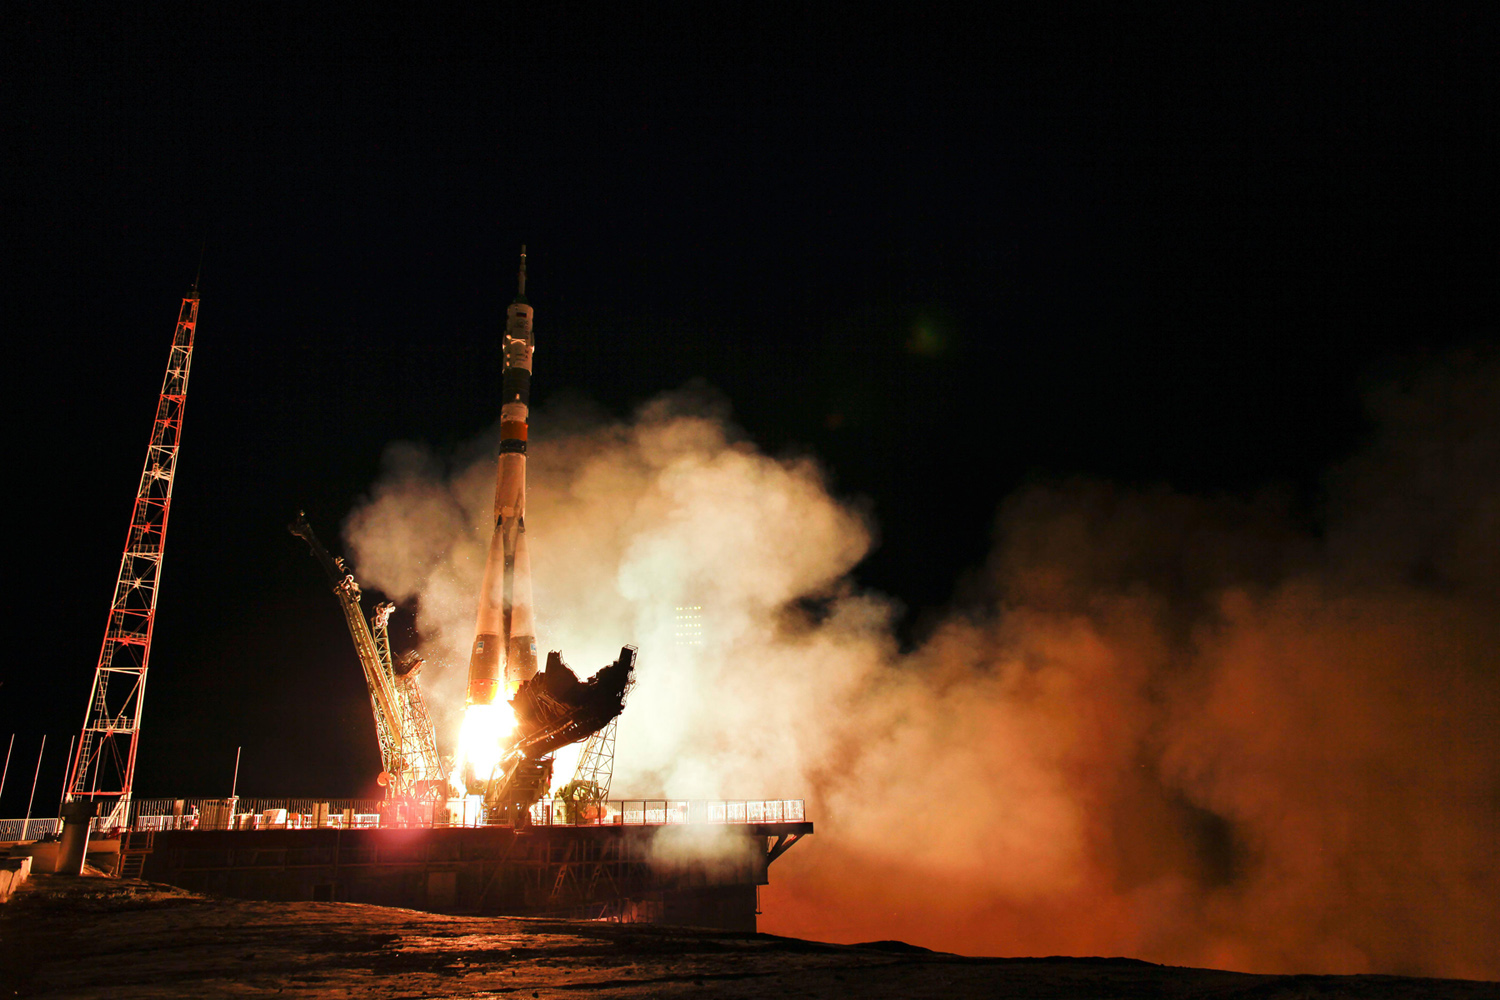 Rocket launches from platform at night, bright orange flame and huge smoke plume